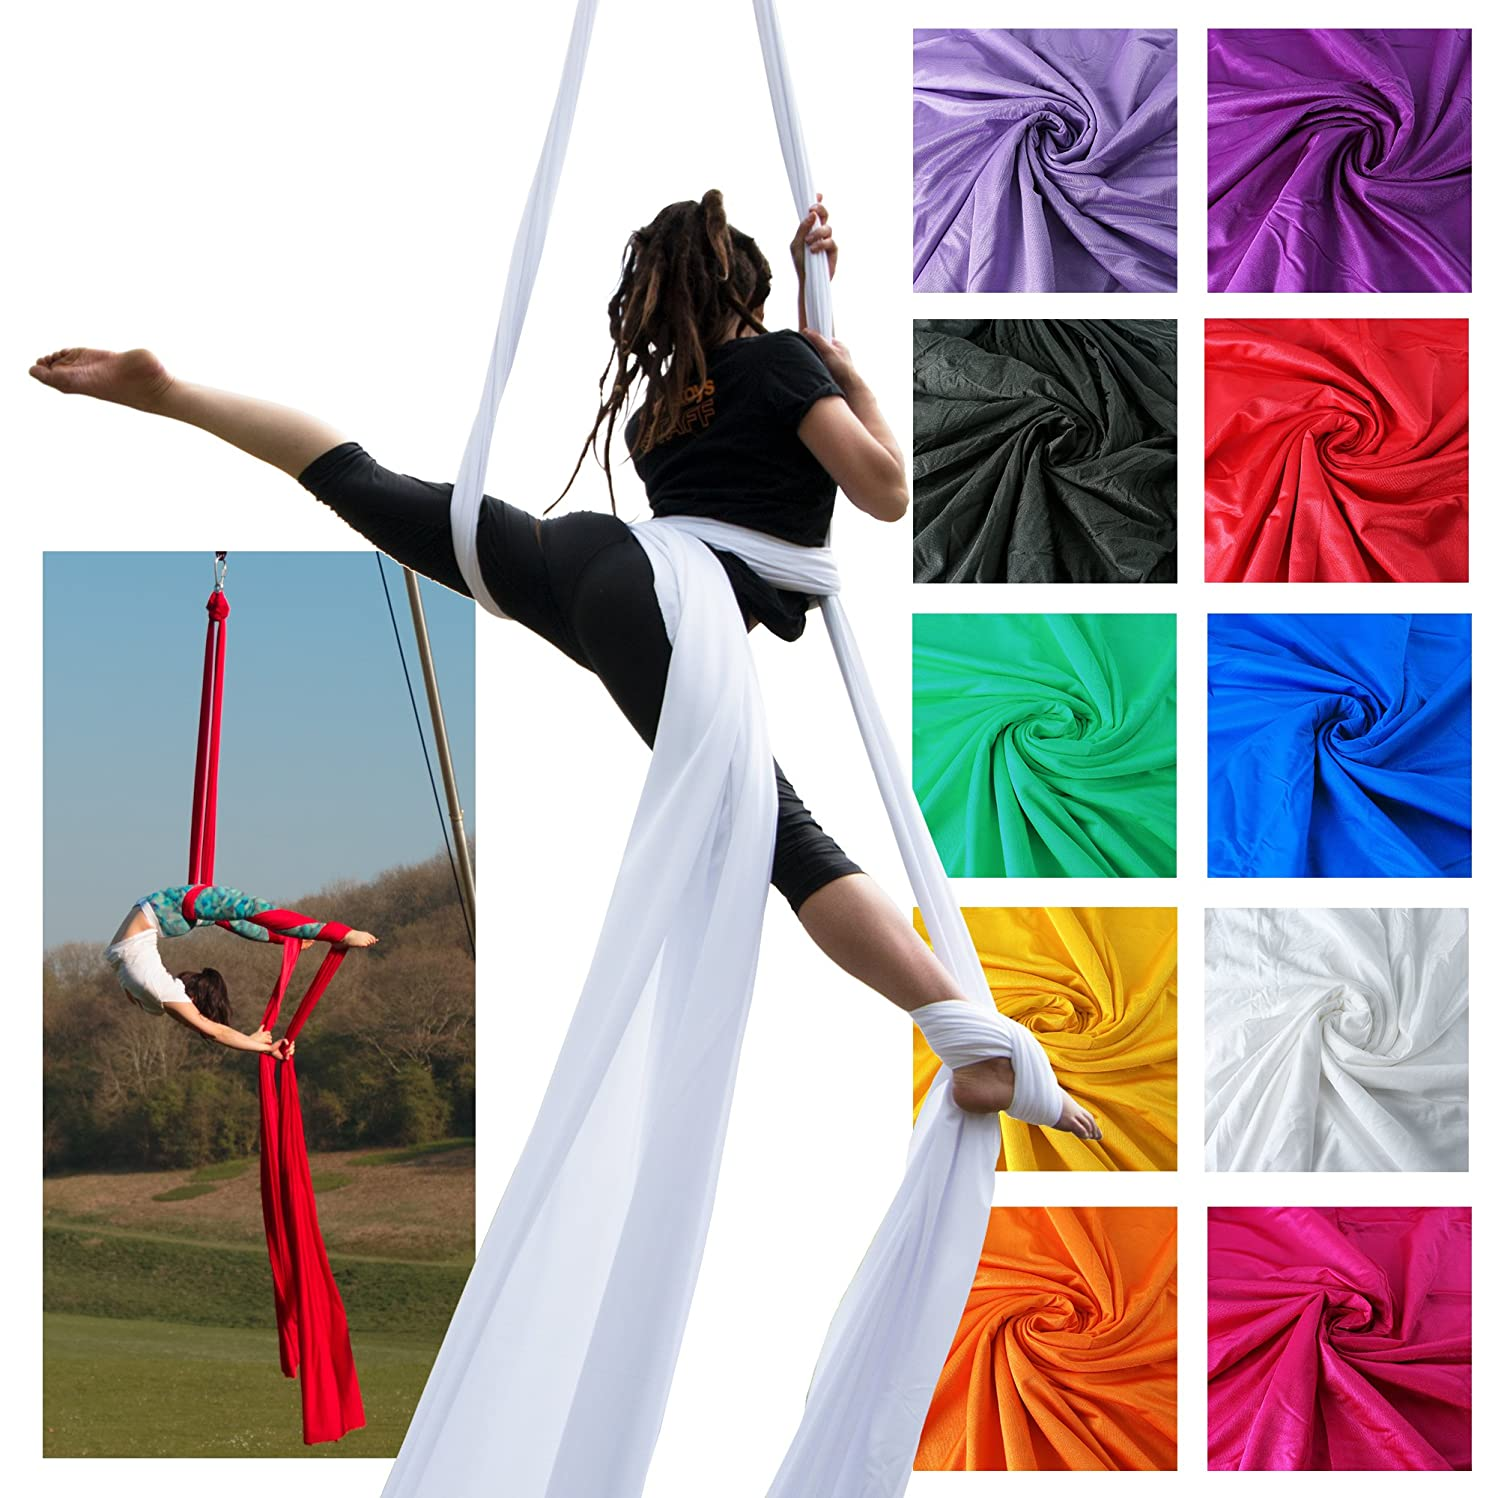 Firetoys Professional Aerial Silks Fabric/Tissues, Medium Stretch Silk WLL 282lbs (128kg) (Black, 52' (16m))